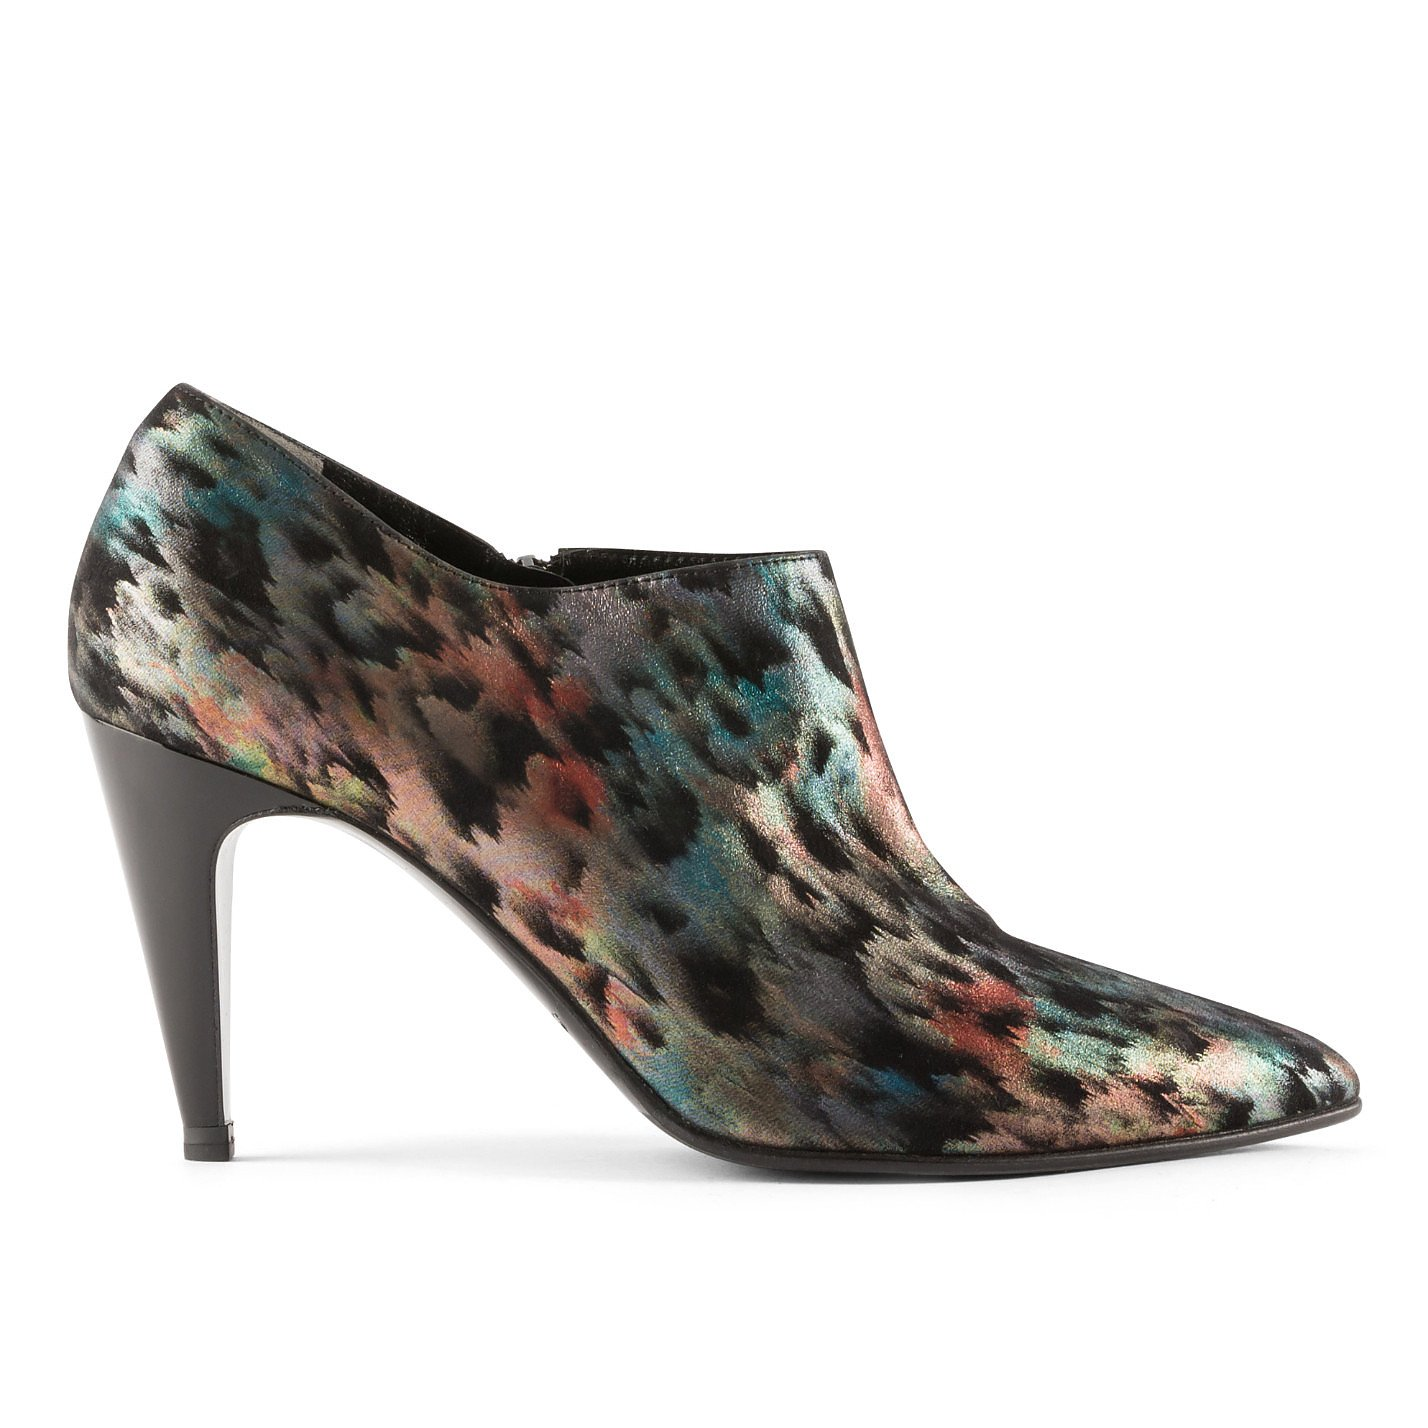 Robert Clergerie Holographic Pumps